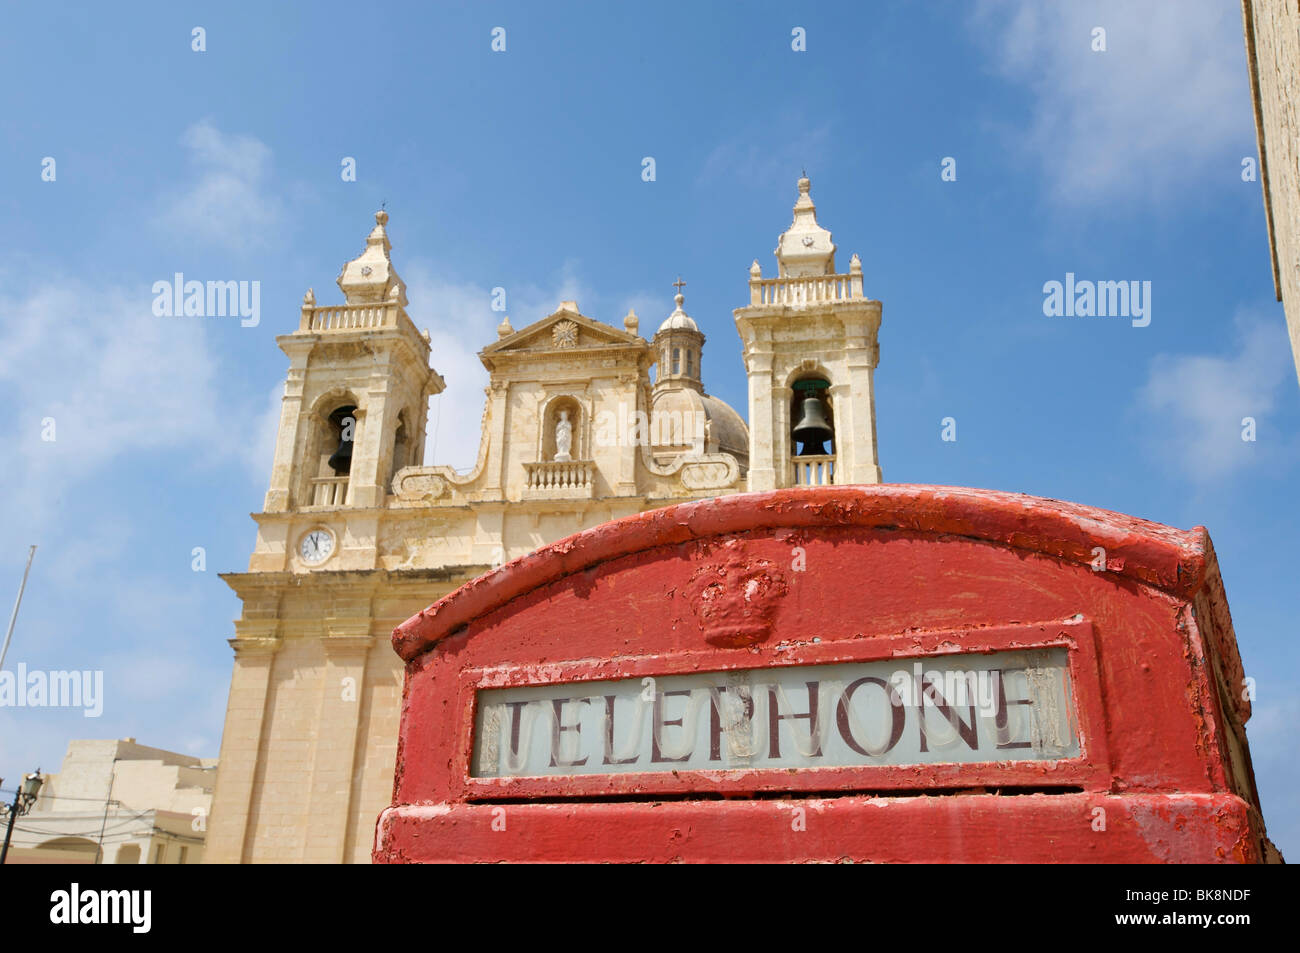 Telephone box and cathedral in Zebbug, Malta, Europe - Stock Image